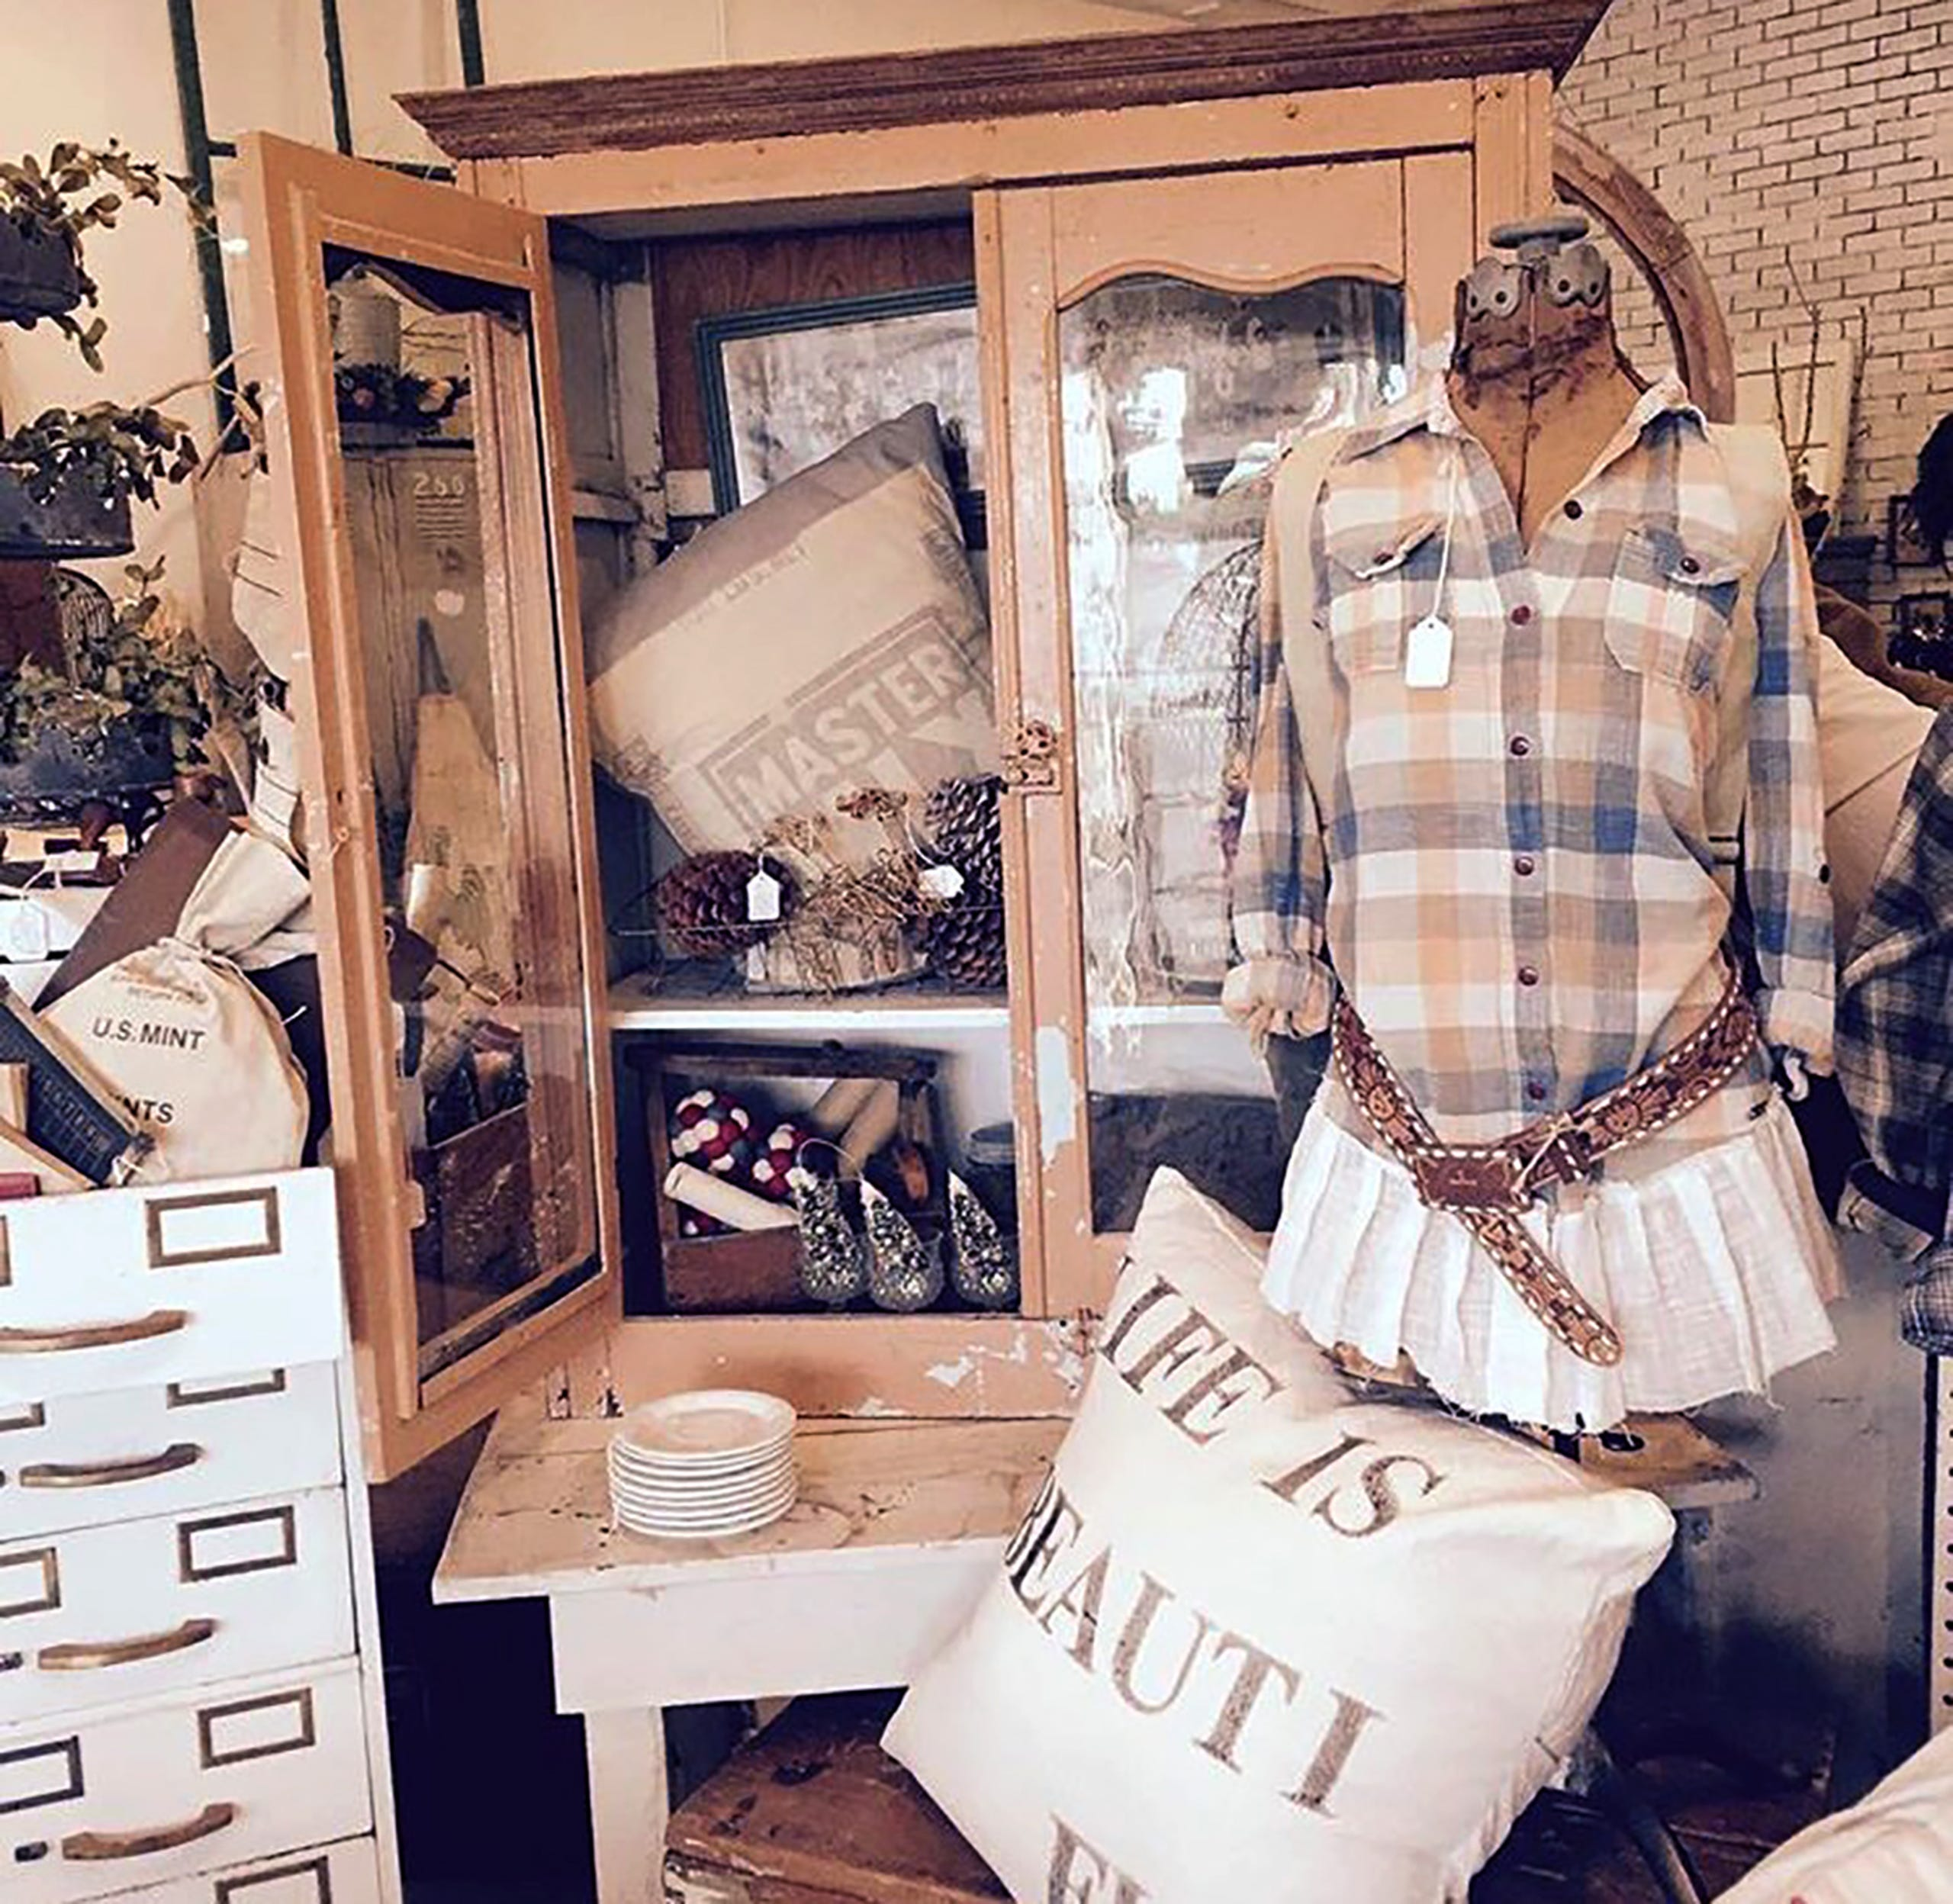 Find Antique Treasures At These Valley Flea Markets